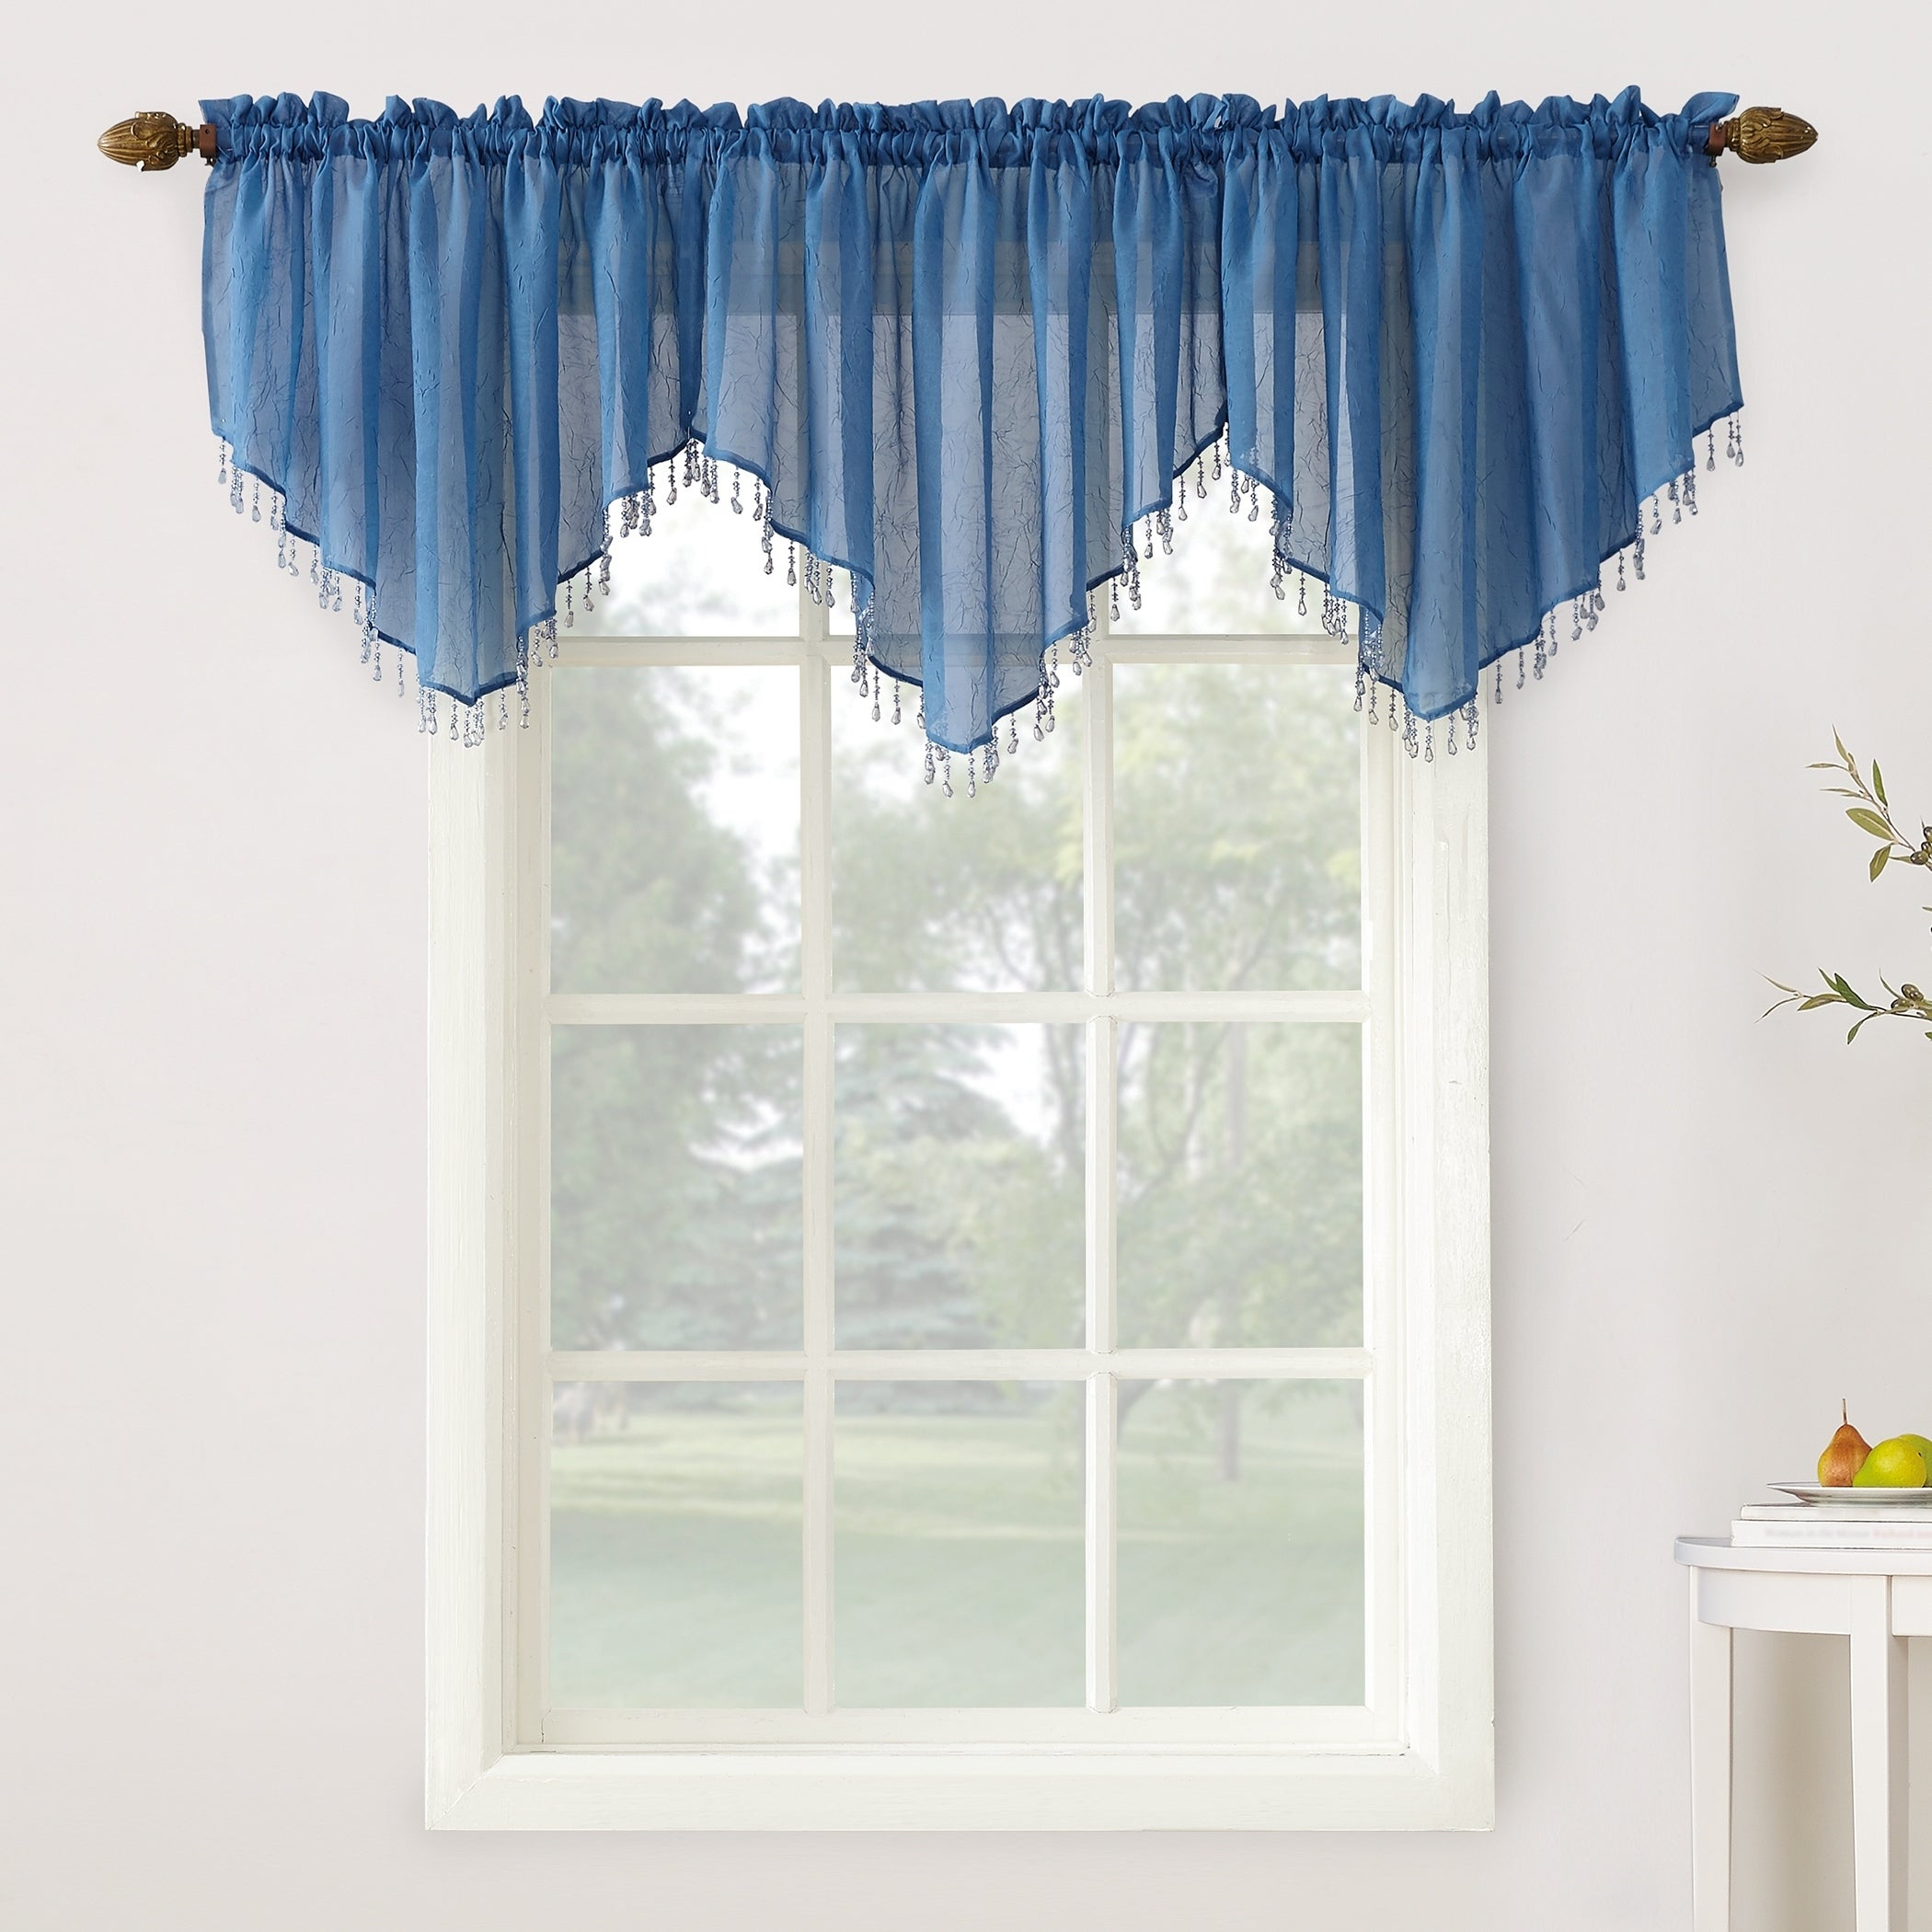 curtain reviews window treatments croscill valance drapes waterfall swag pdx home wayfair serafina fashions with